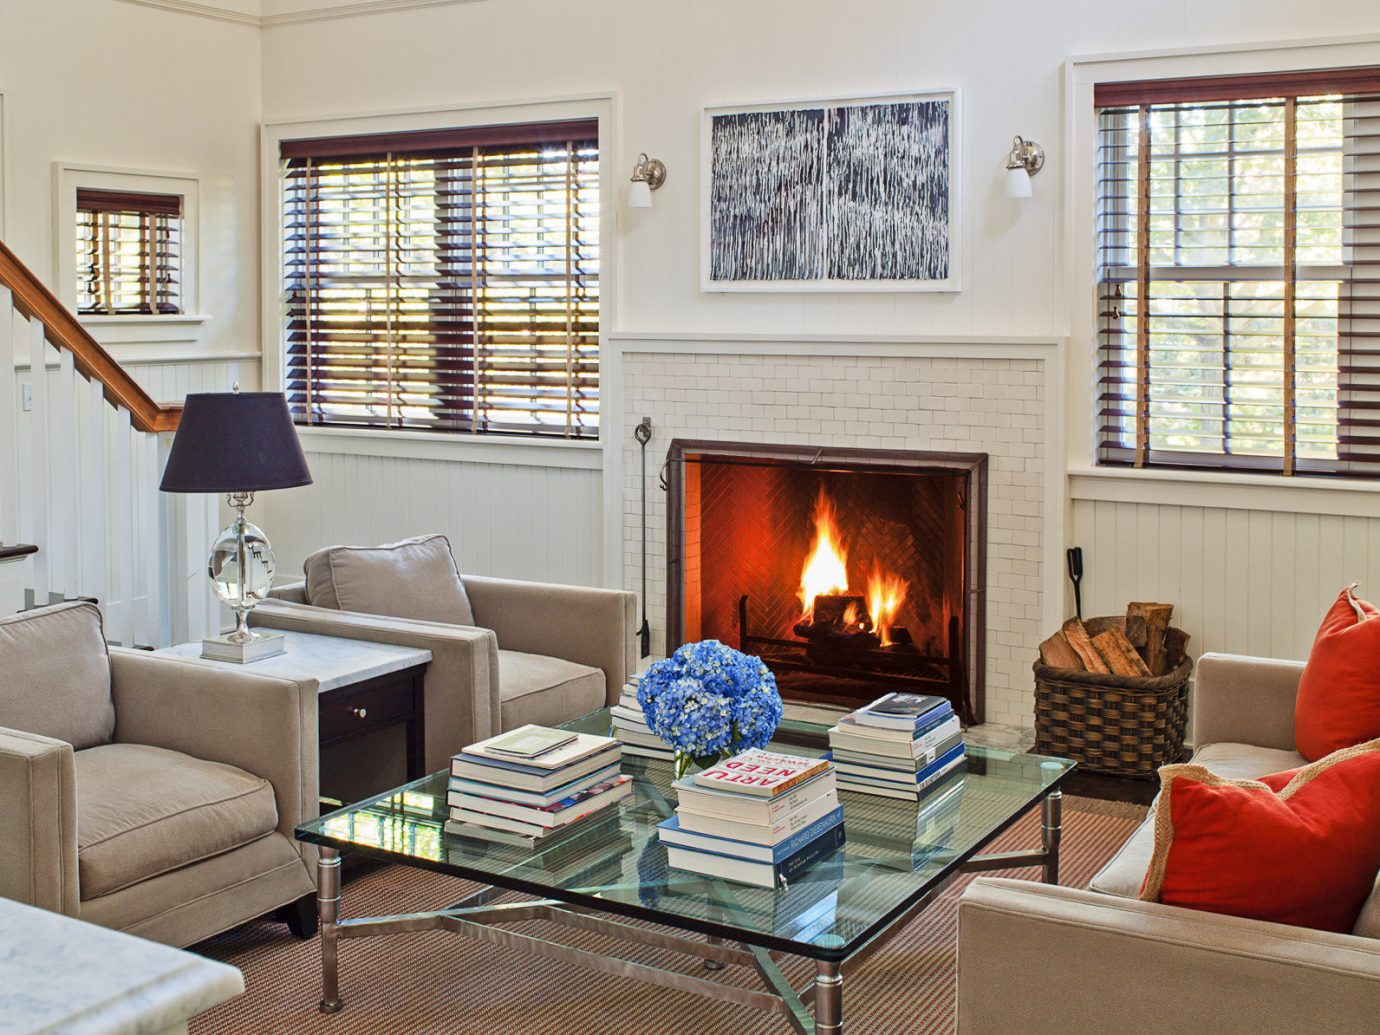 Beach South Fork The Hamptons indoor Living sofa window room living room Fireplace floor wall fire home interior design hearth real estate furniture window treatment window covering interior designer decorated